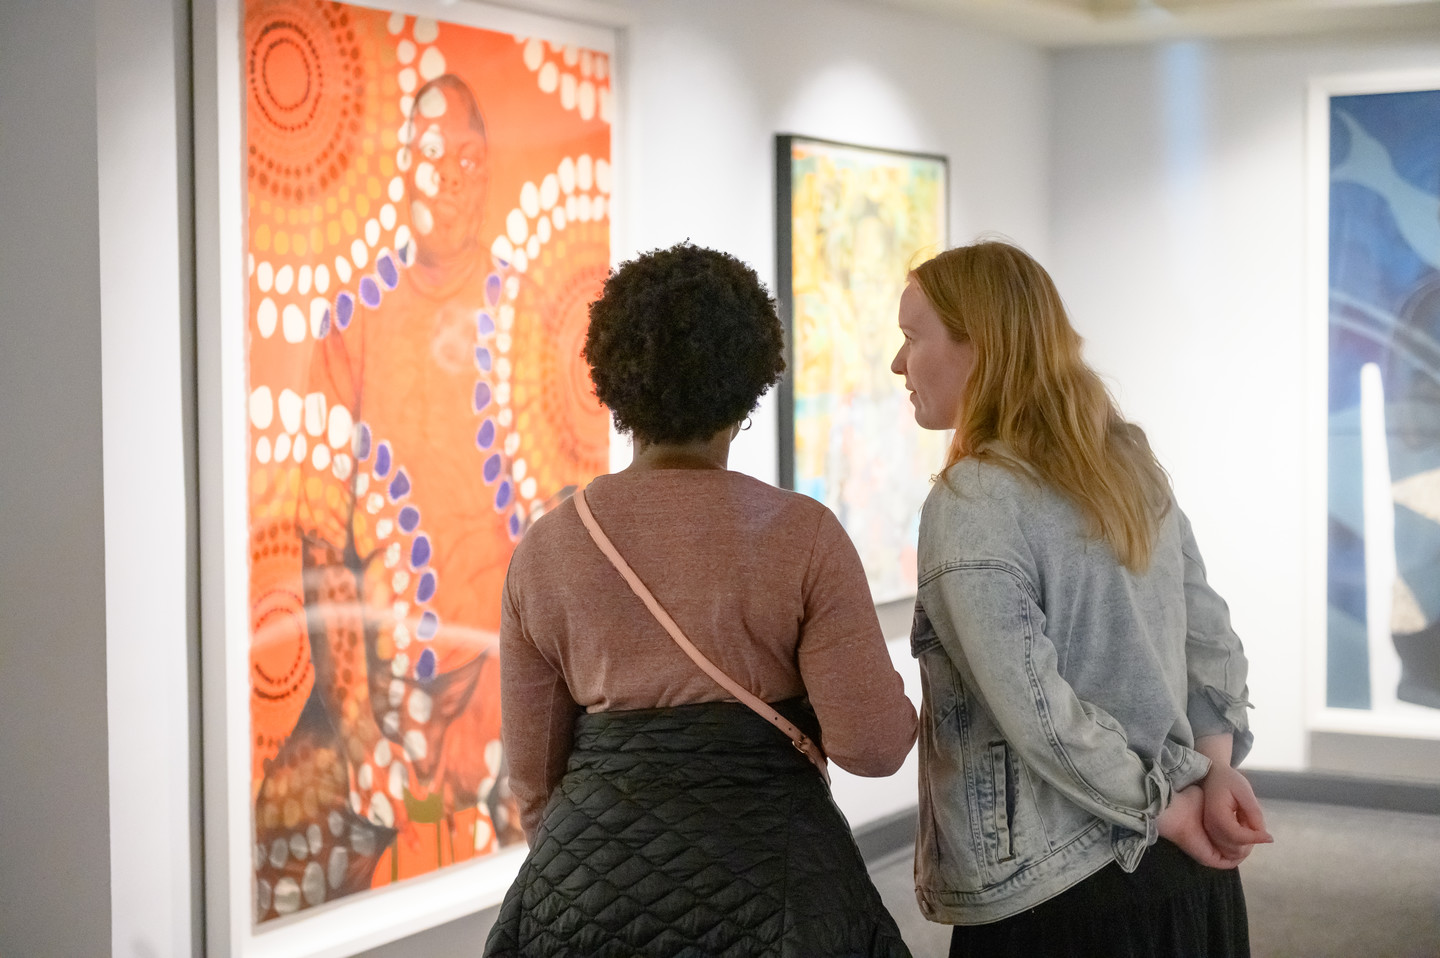 Two figures stand facing a large colorful work on paper. The figure on the left is dark skinned with short, curly, brown hair, the figure on the right is light skinned with long, straight, blonde hair. The work on paper depicts a seated dark skin person staring confidently at the viewer; an overlay of bright orange and circular patterns of white, blue, and brown circles covers the person and background.